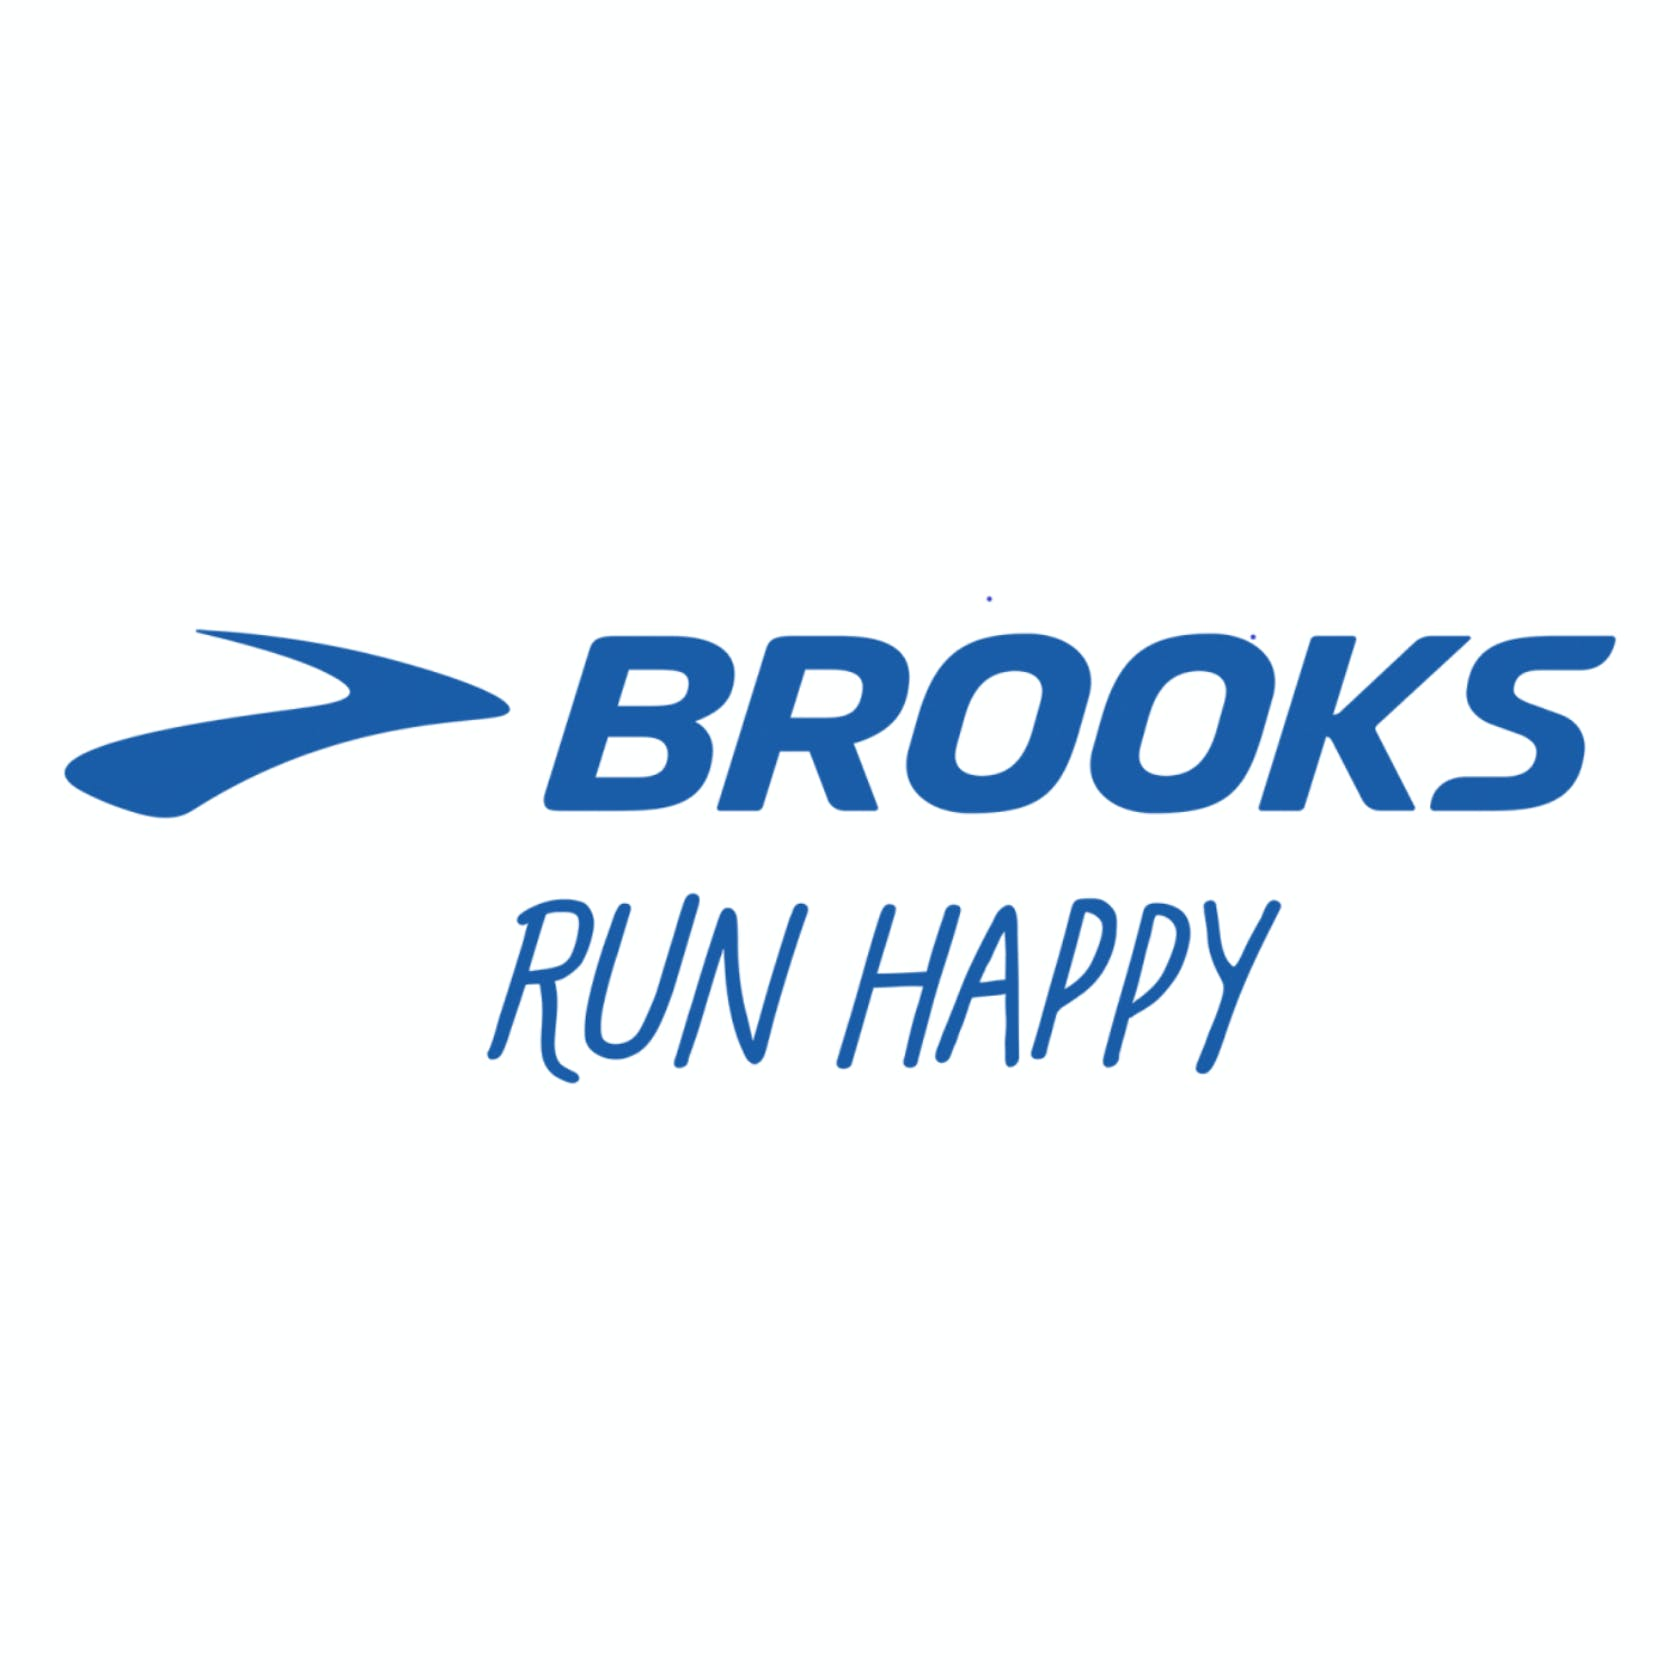 Brooks shop online